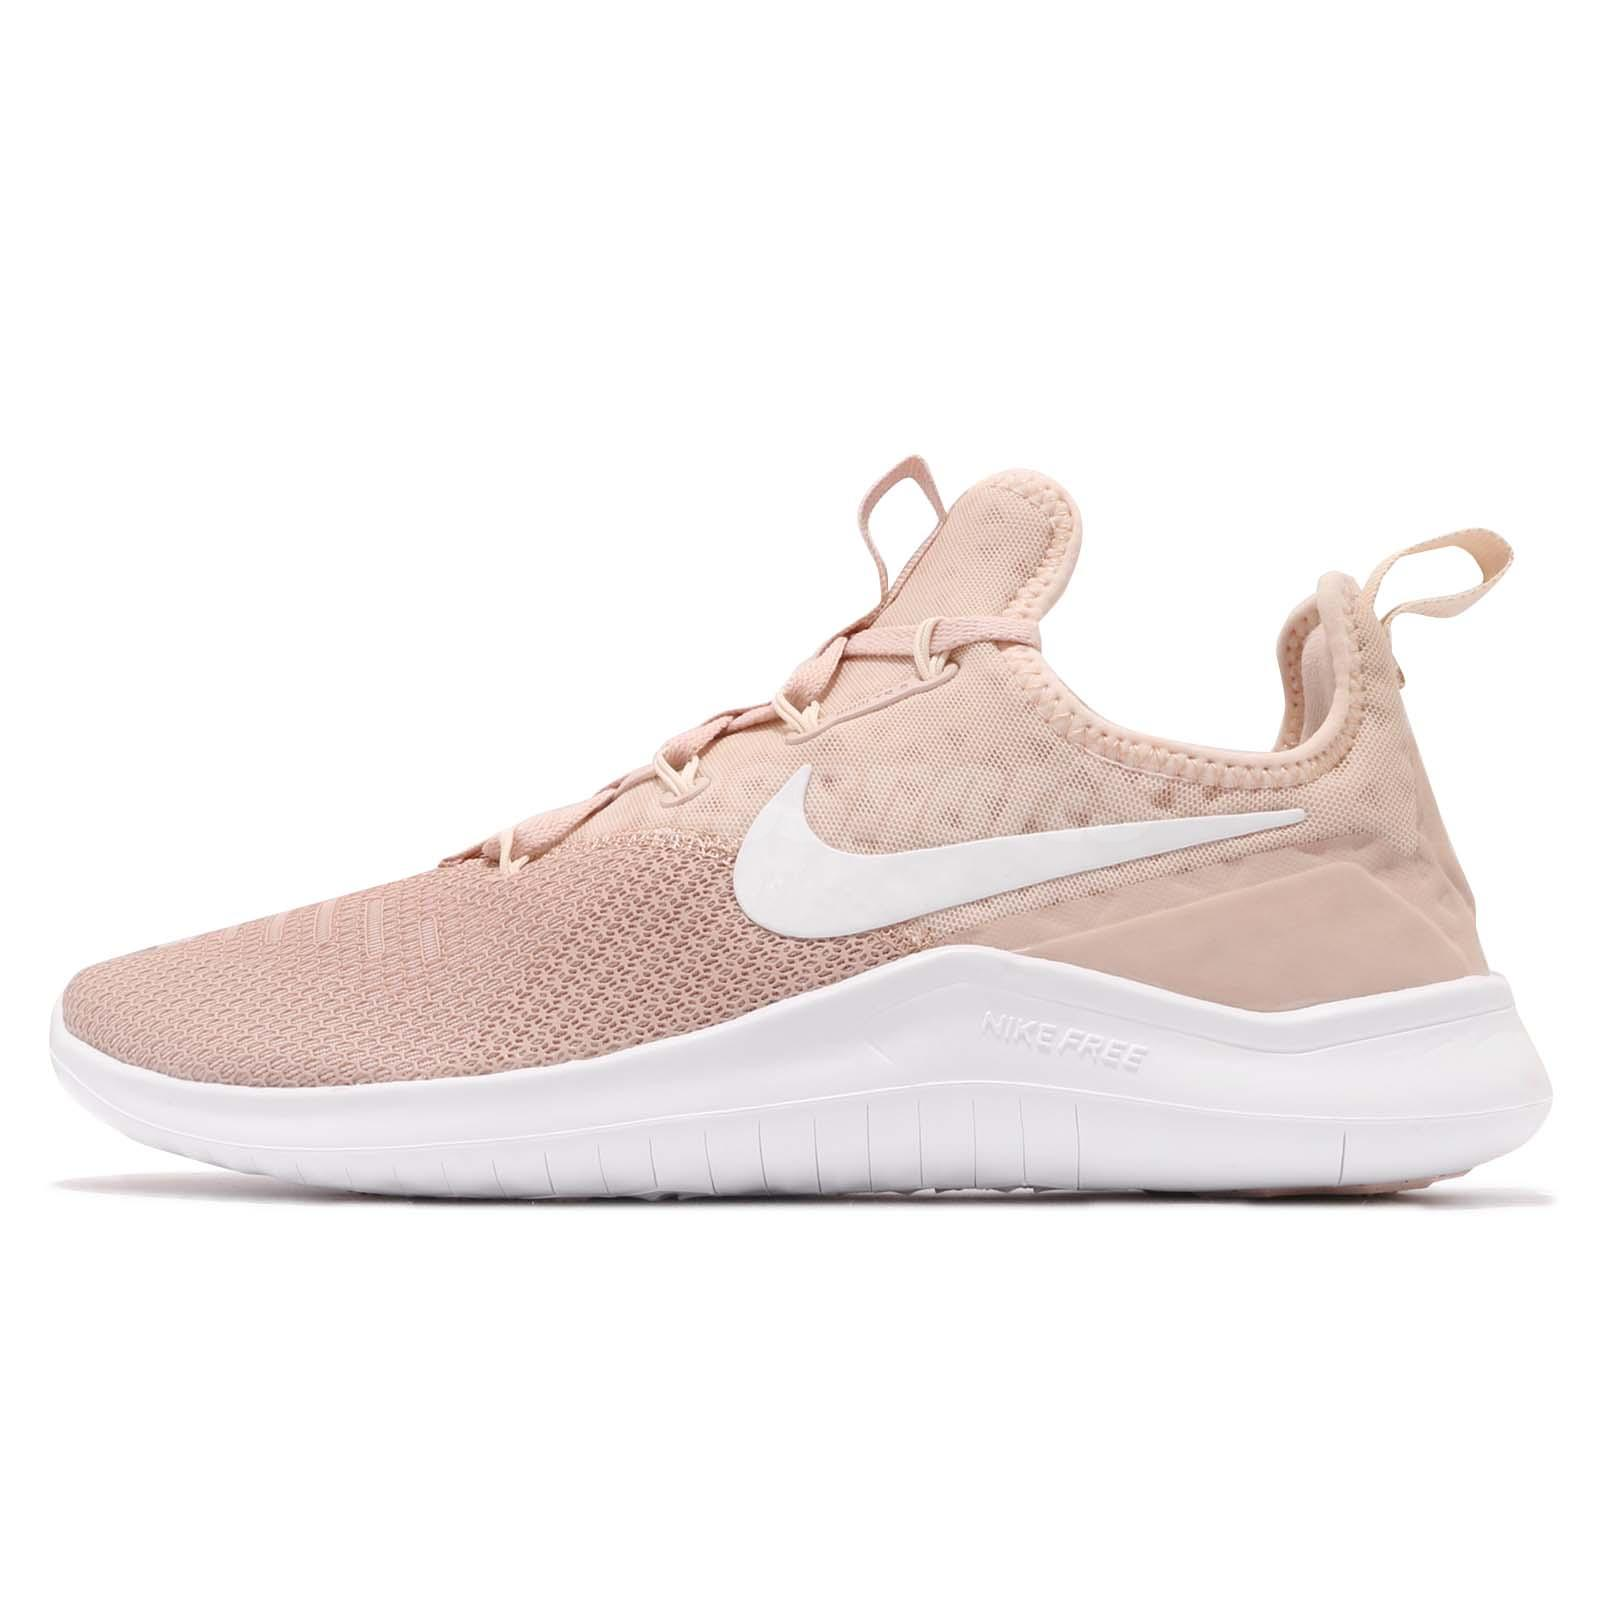 7a43f67ef473 Nike Wmns Free TR 8 VIII Particle Beige White Women Training Shoes  942888-200